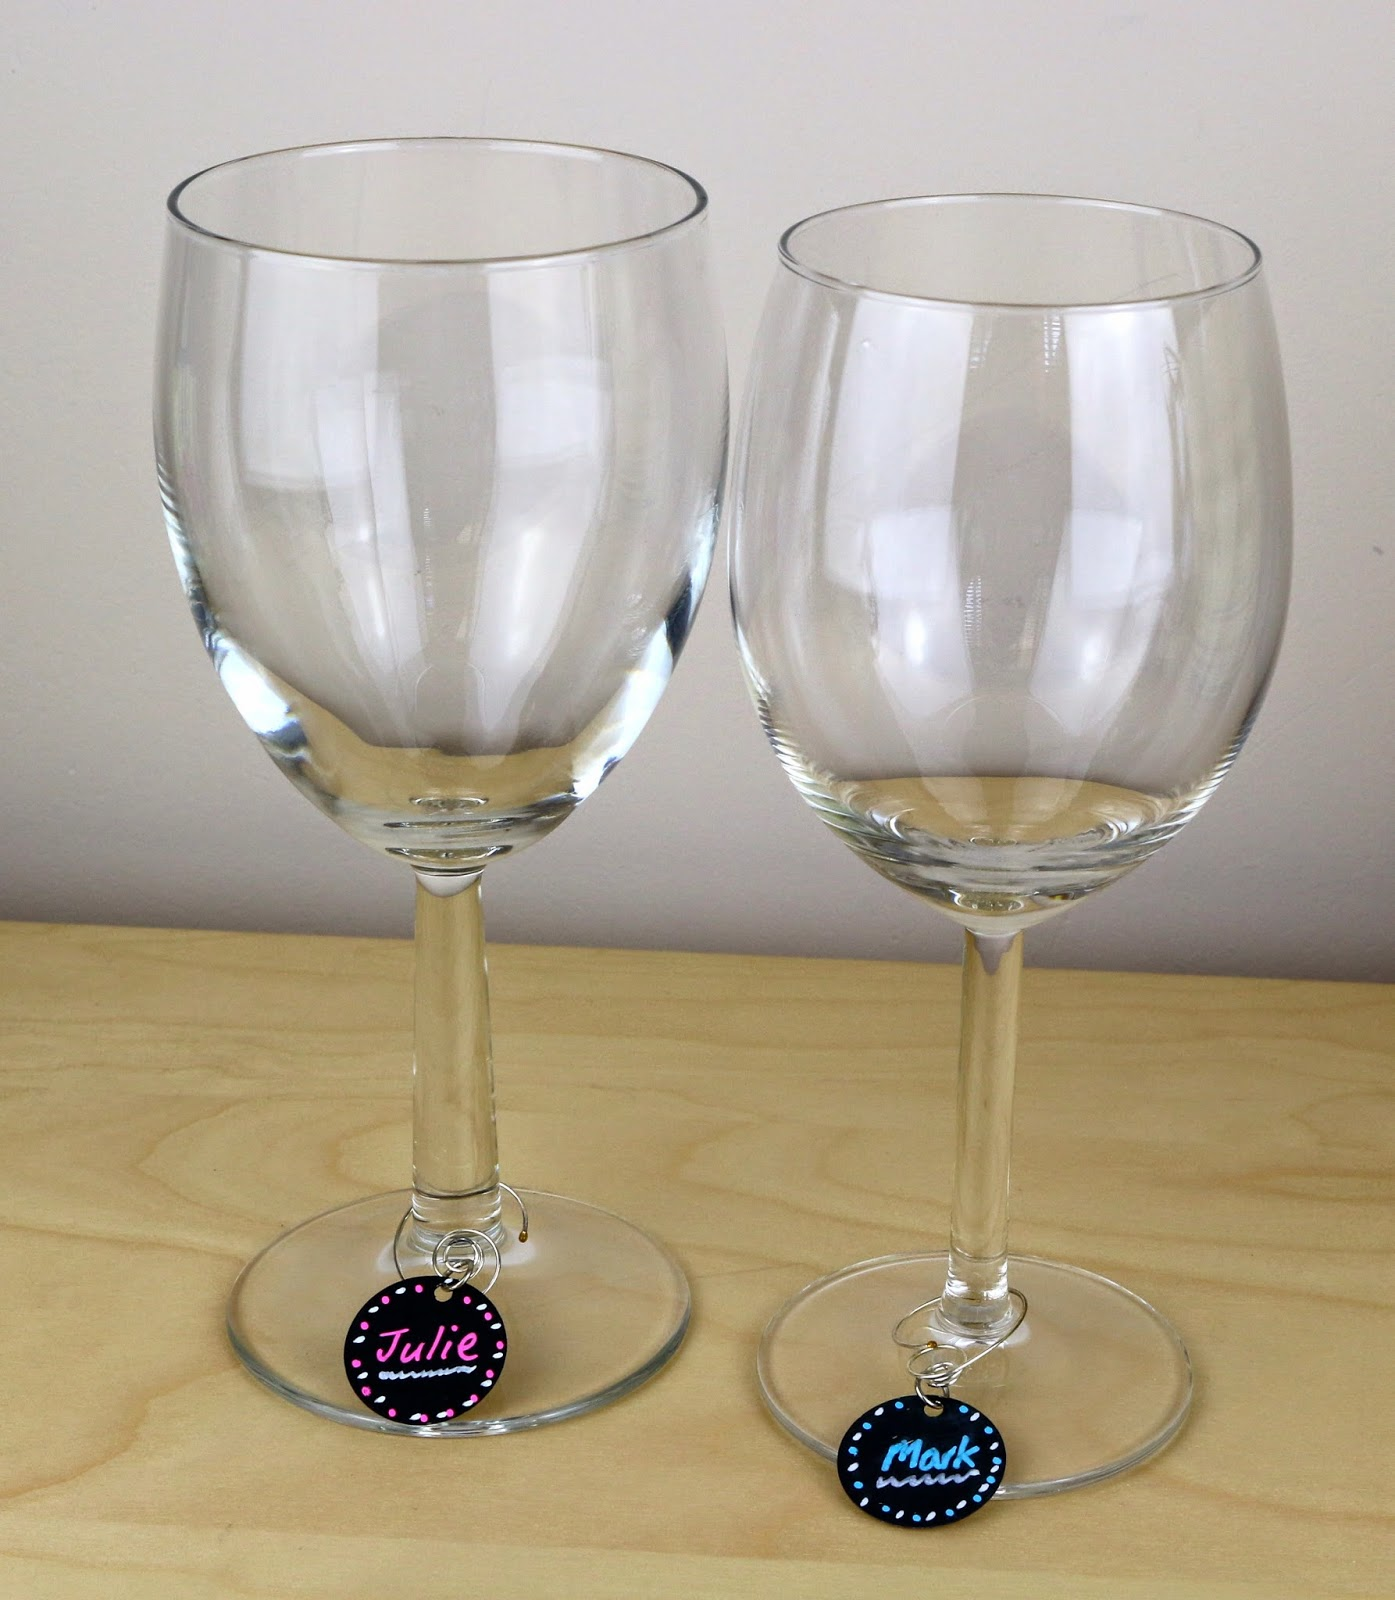 SRM Stickers Blog - Personalized Wine Glasses by Cathy A. - #easychalkboardmarker #chalkboard #markers #white #flourencent #personization #DIY